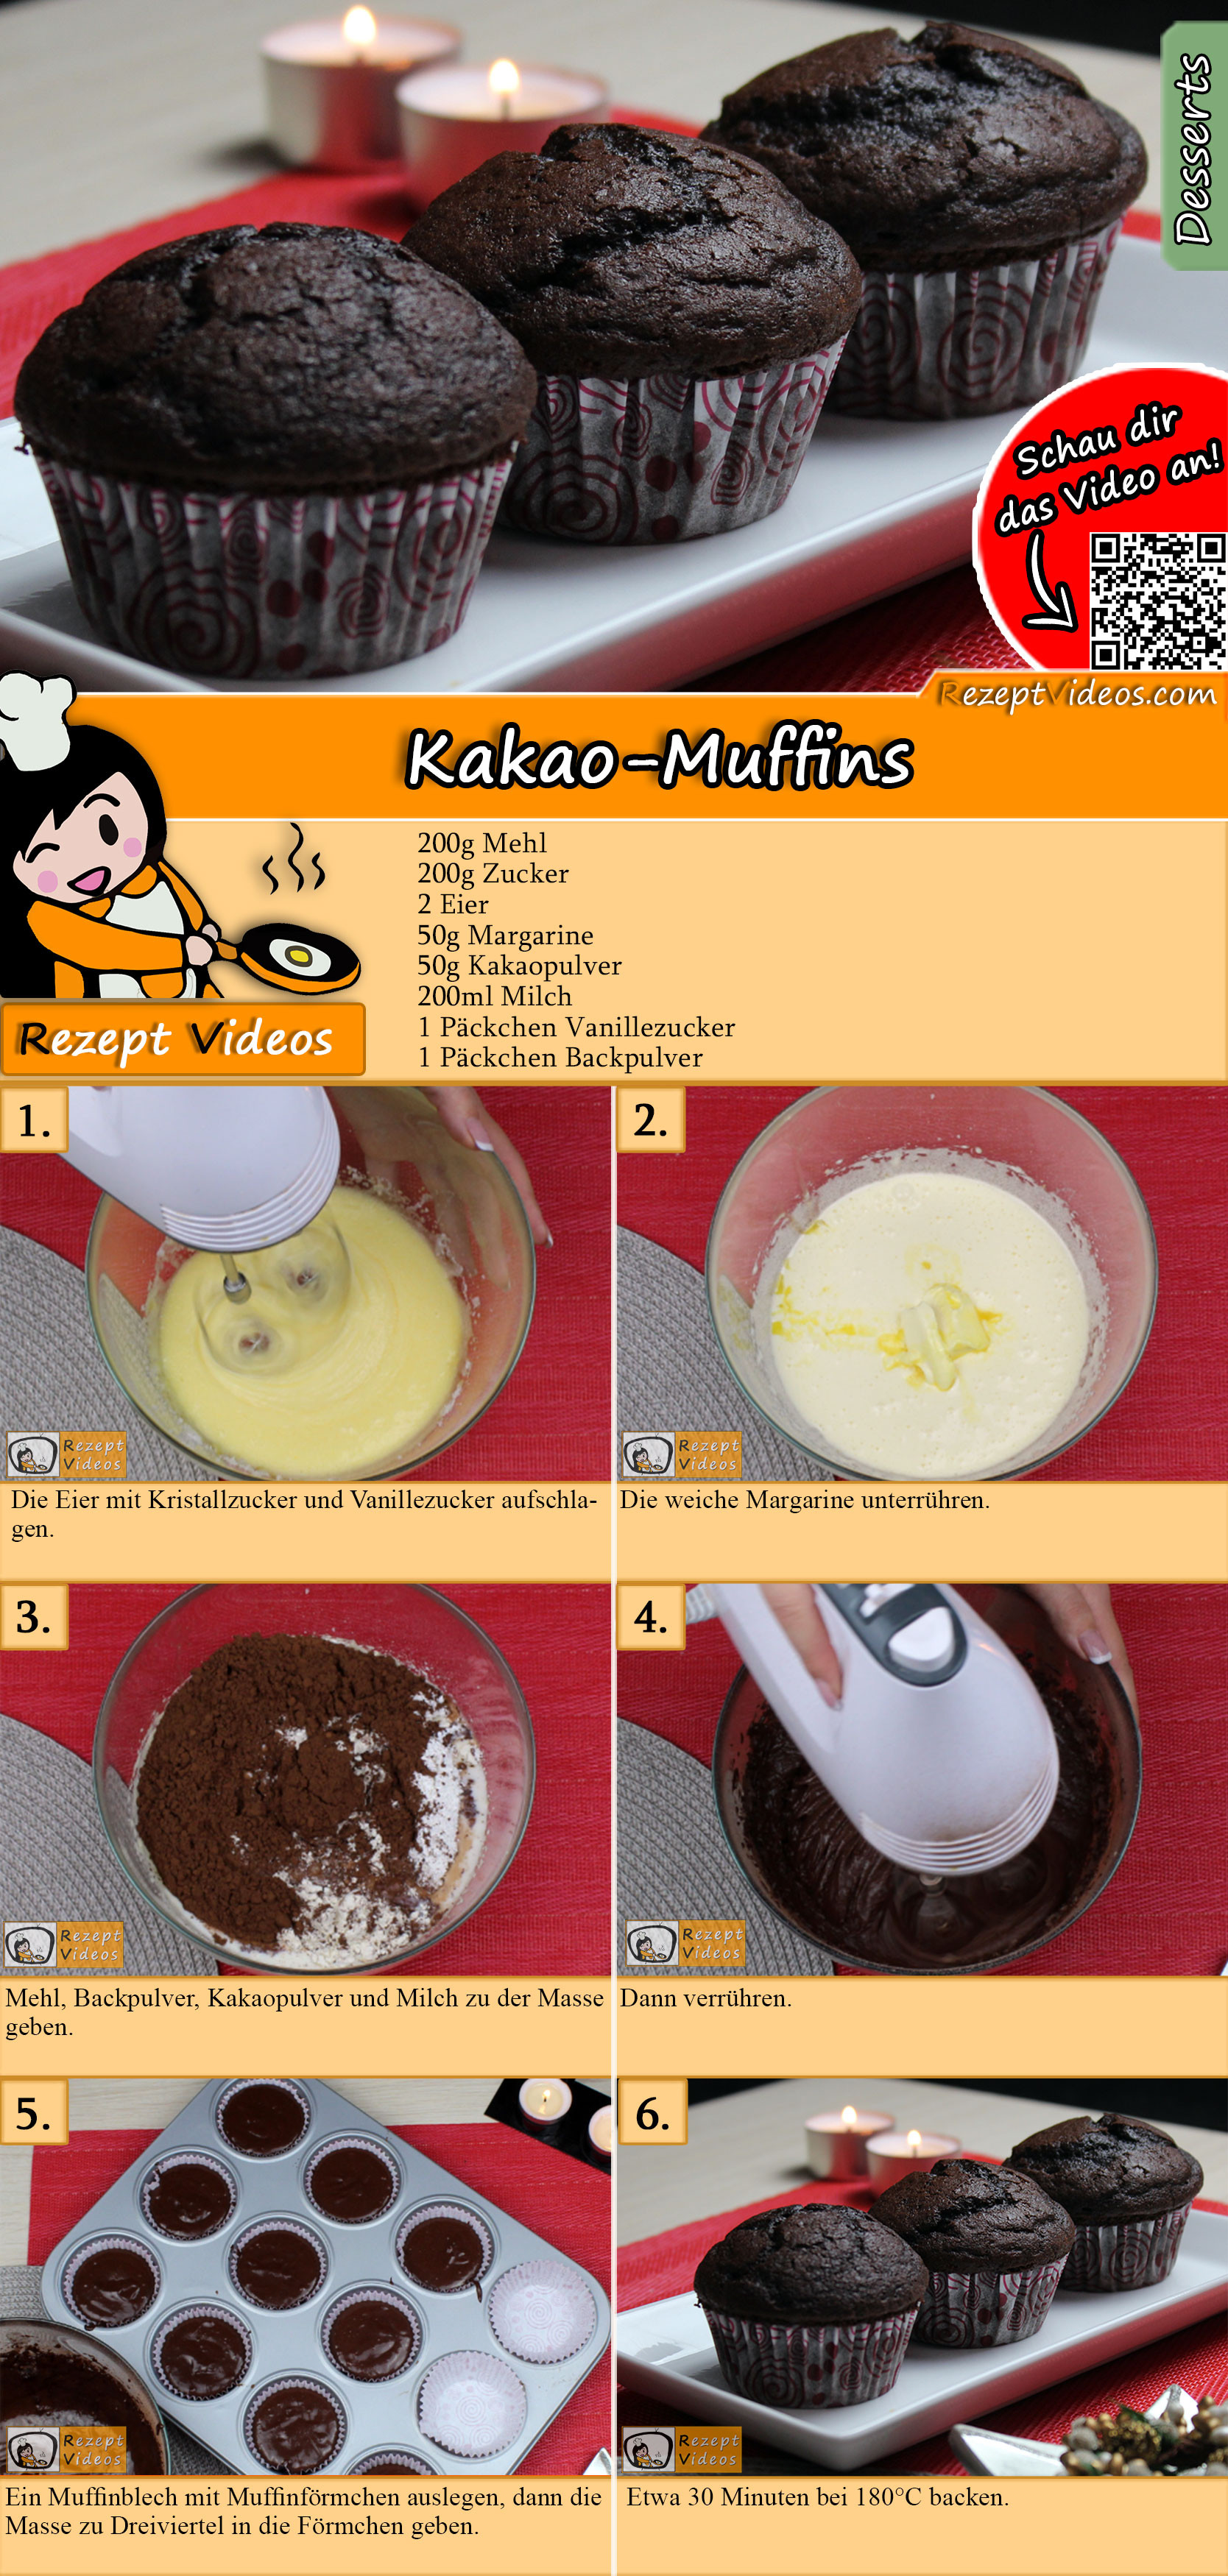 Kakao-Muffins Rezept mit Video